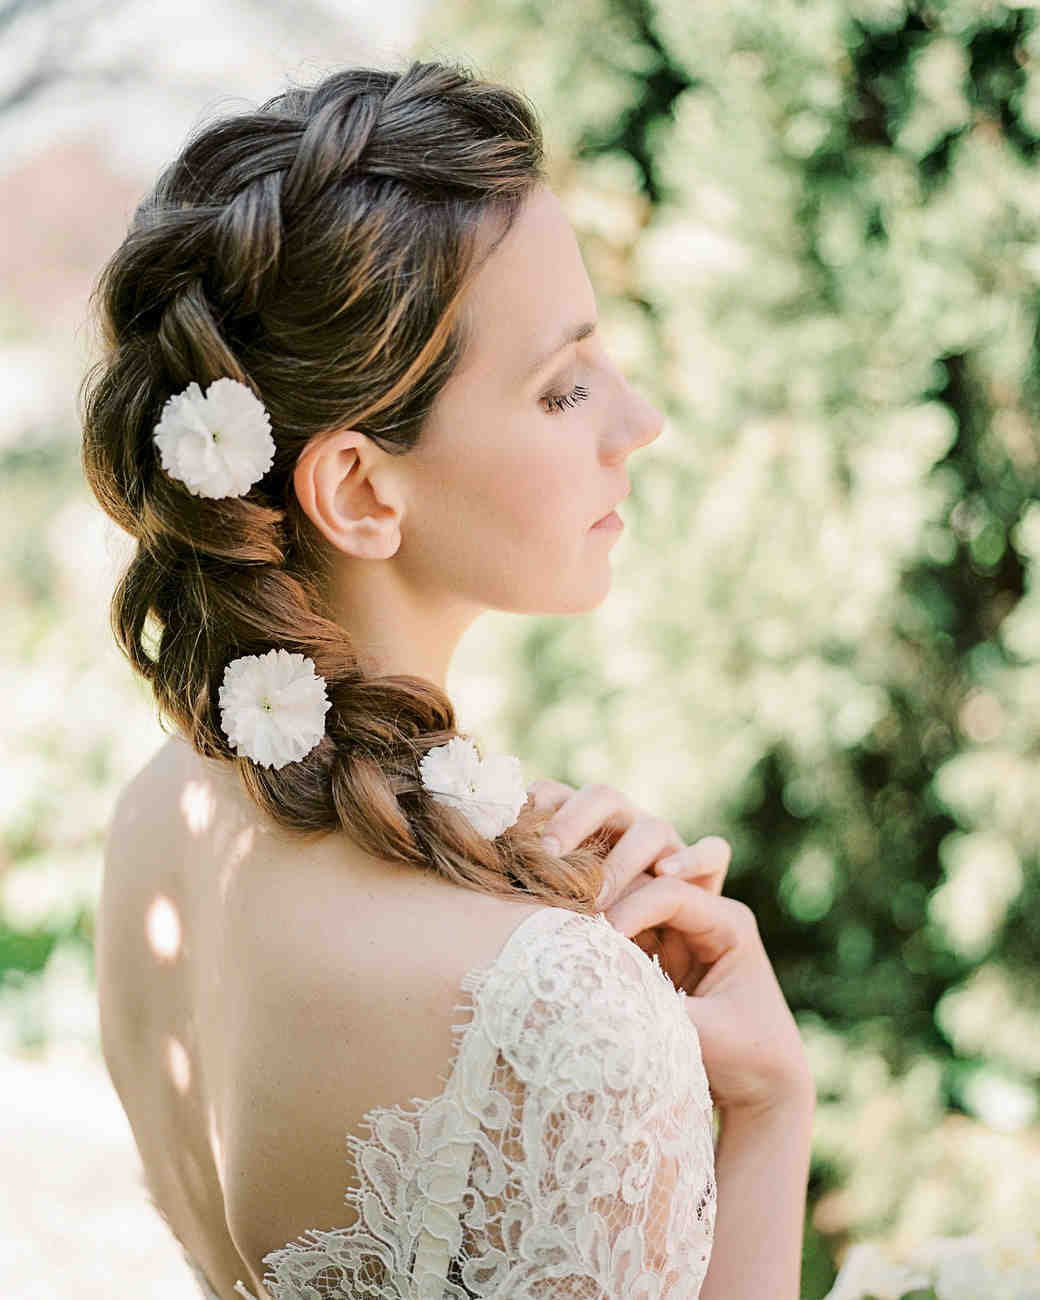 Braided Wedding Hair: 25 Braided Wedding Hairstyles We Love